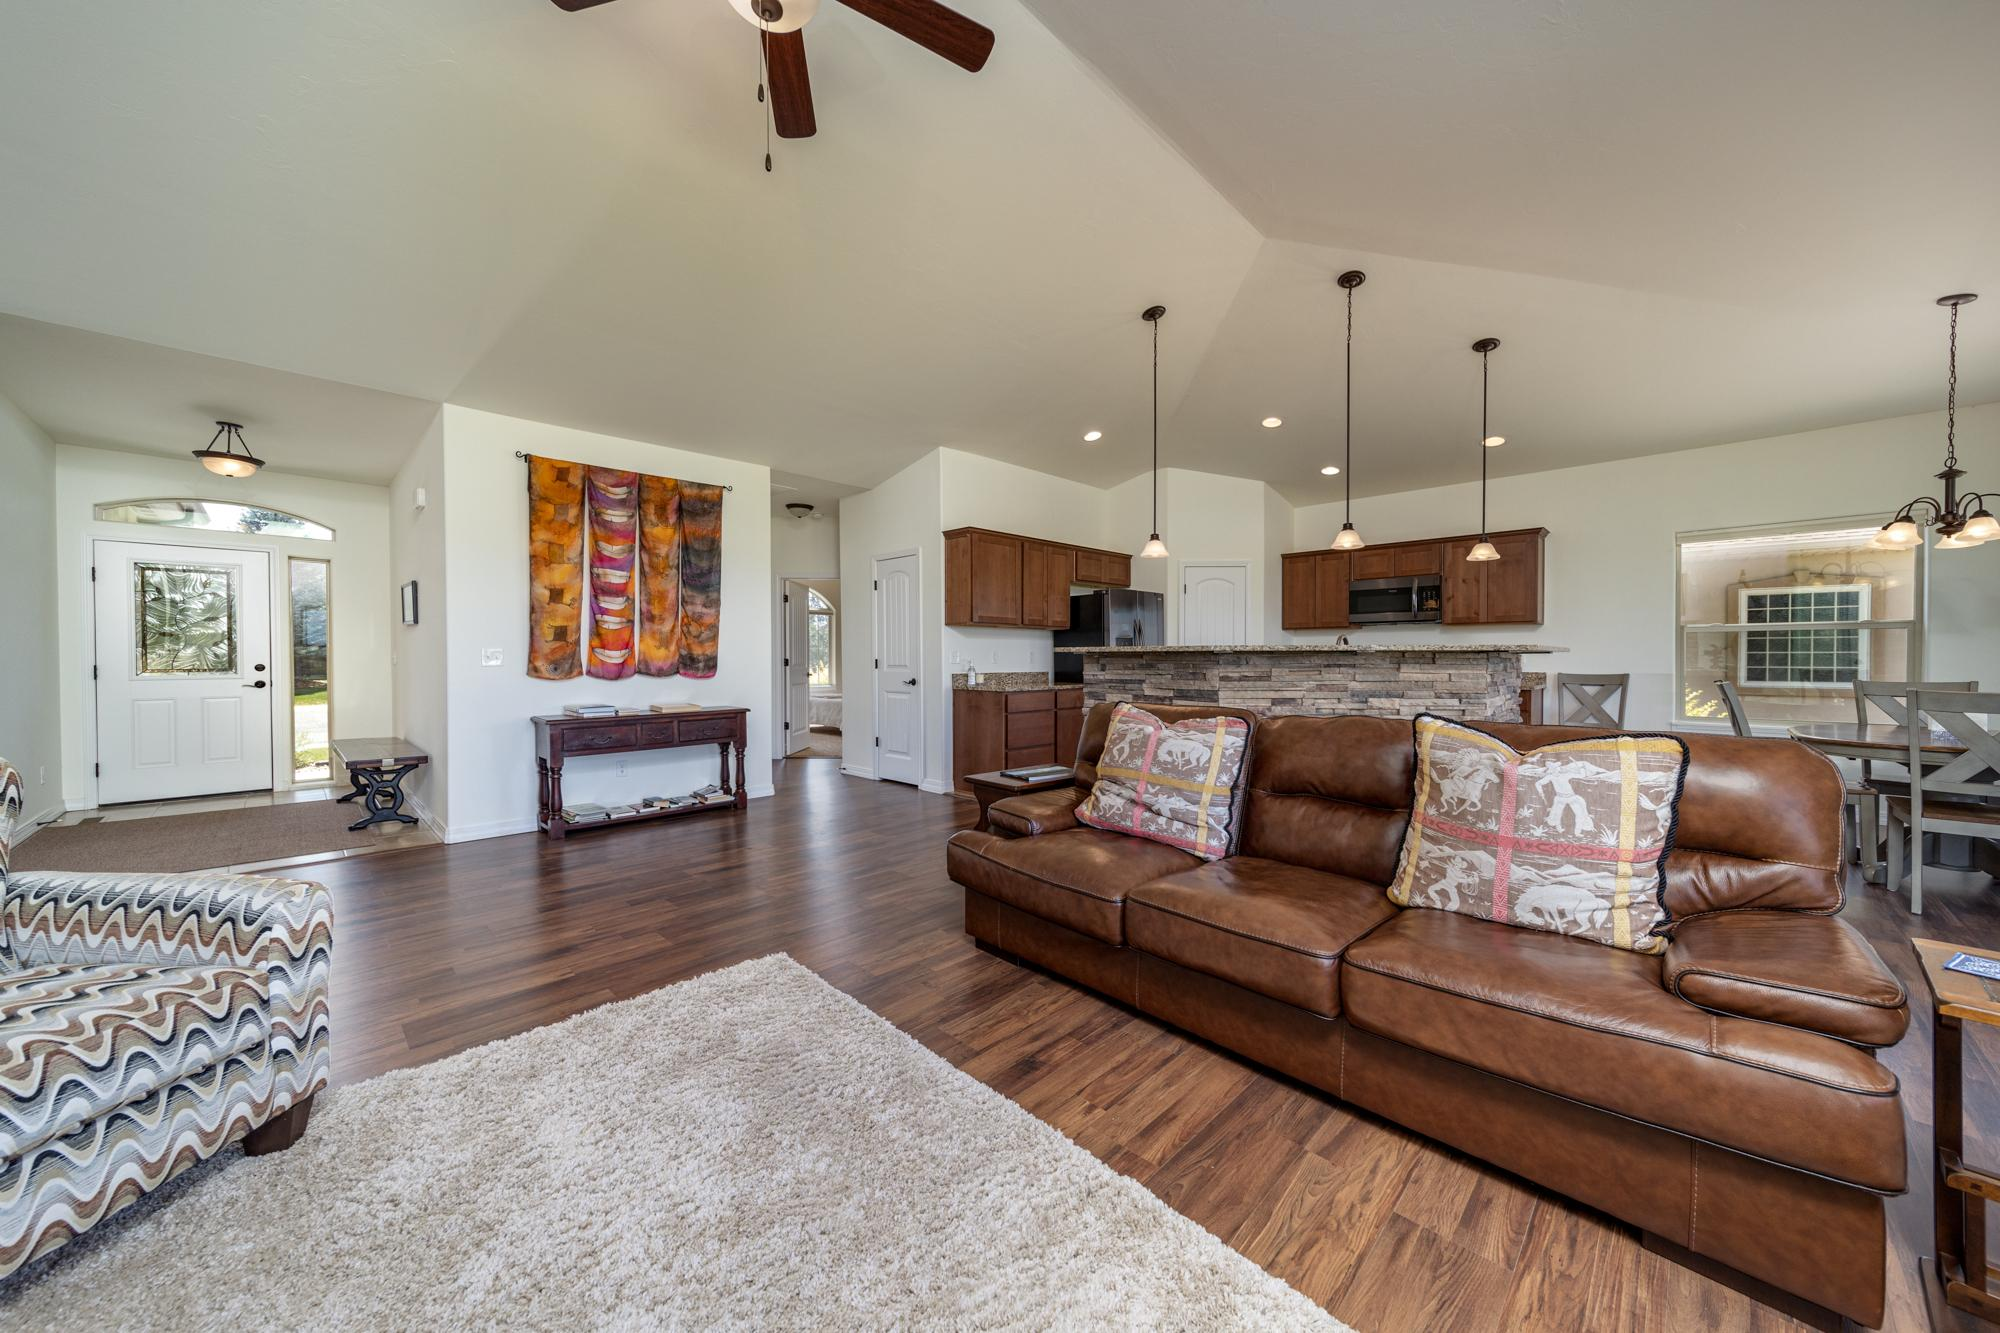 Living Room with Vaulted Ceiling - 597 Cobble Dr Montrose, CO - Atha Team MLS Colorado